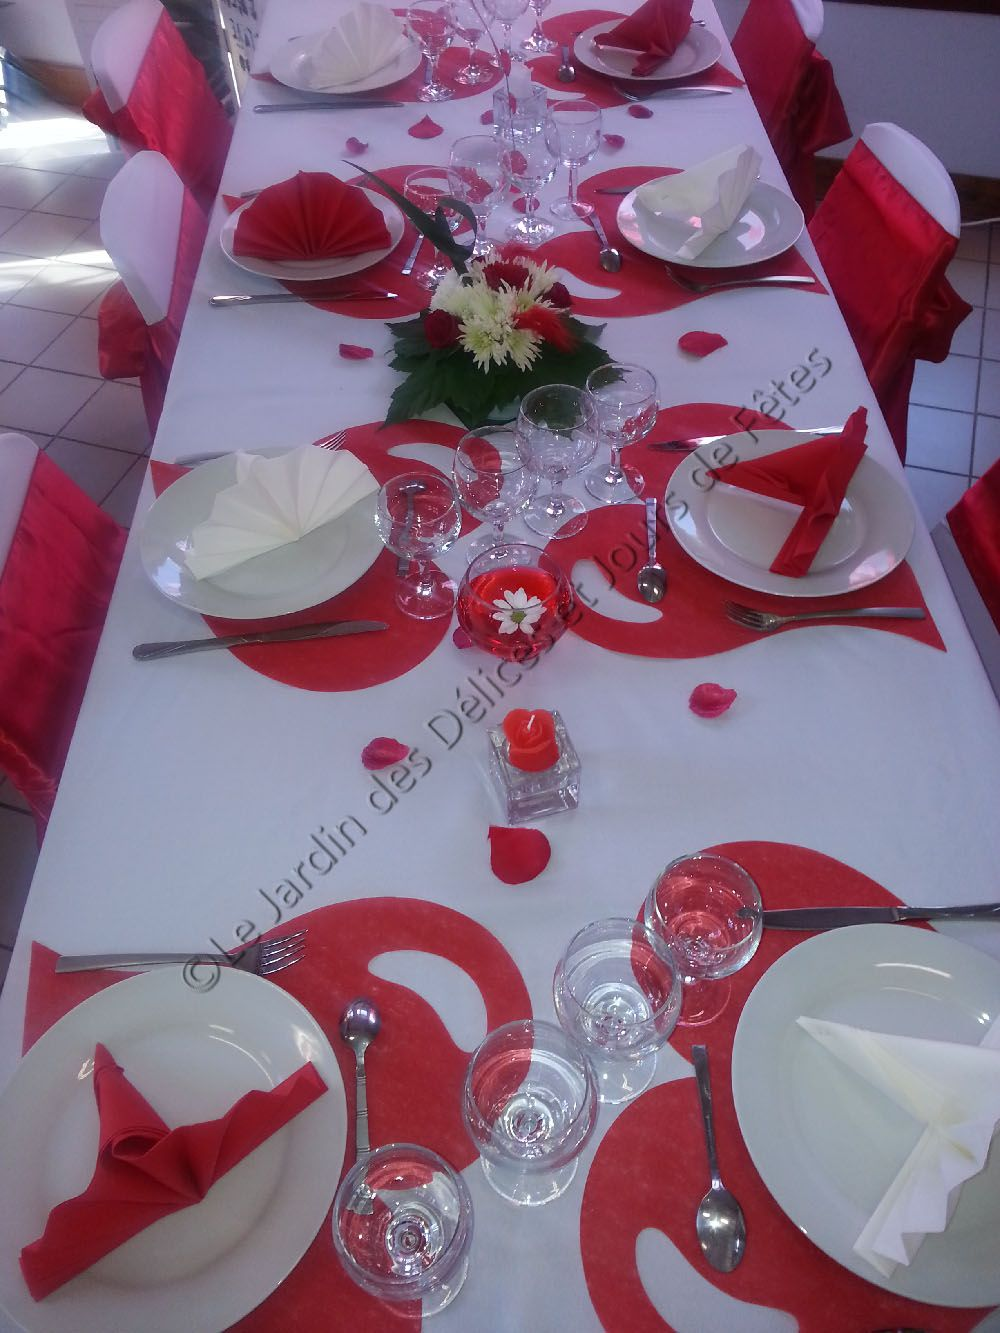 d coration table en rouge et blanc 60 ans de mariage en. Black Bedroom Furniture Sets. Home Design Ideas